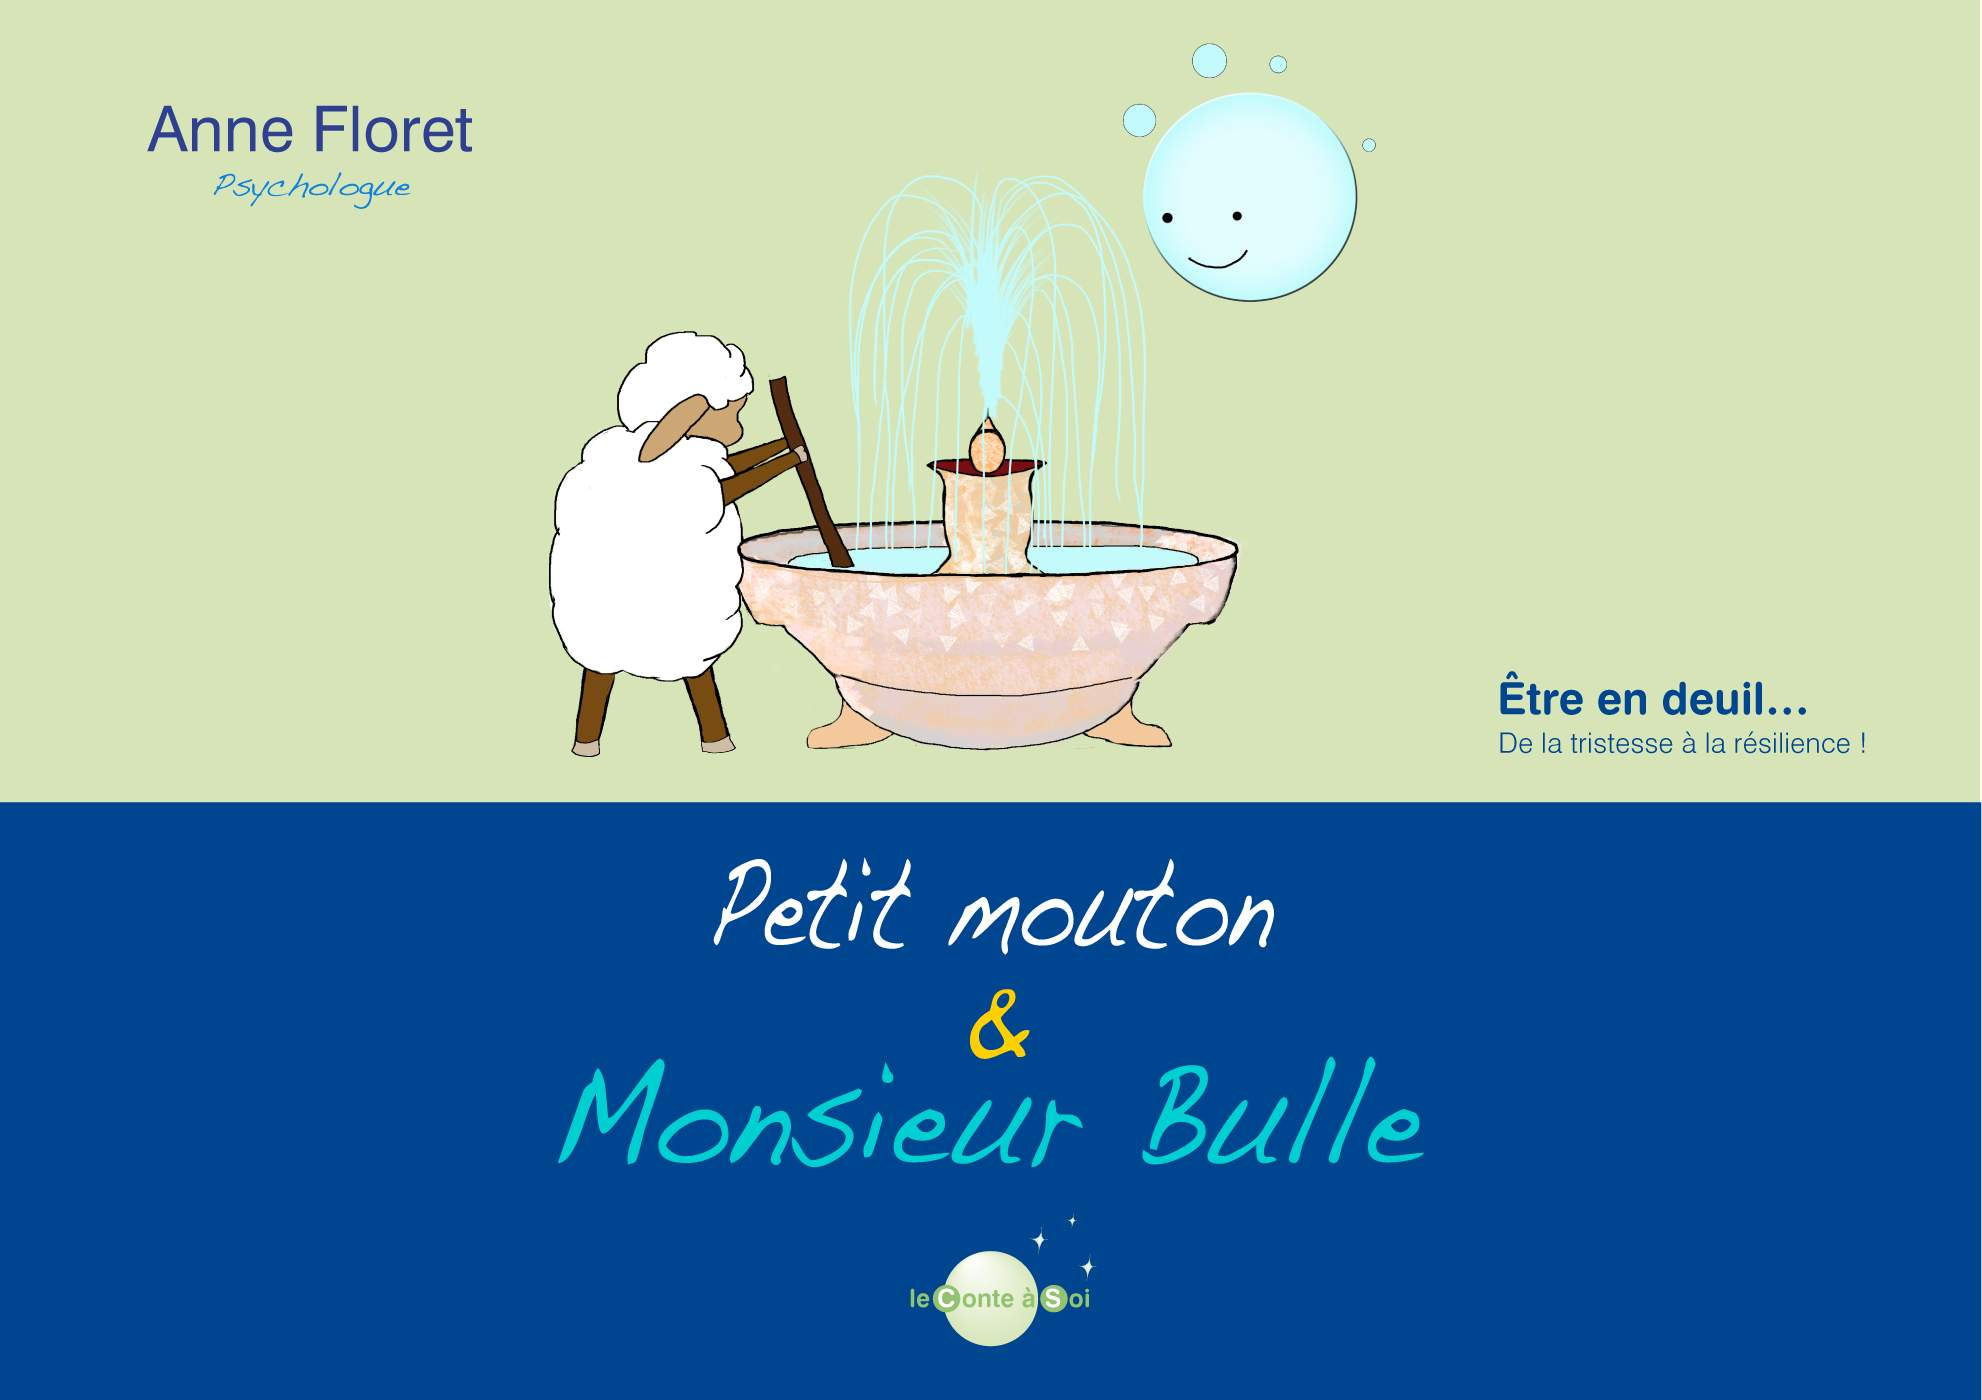 Petit mouton et Monsieur Bulle, par Anne Floret van Eiszner, psychologue à Paris 15